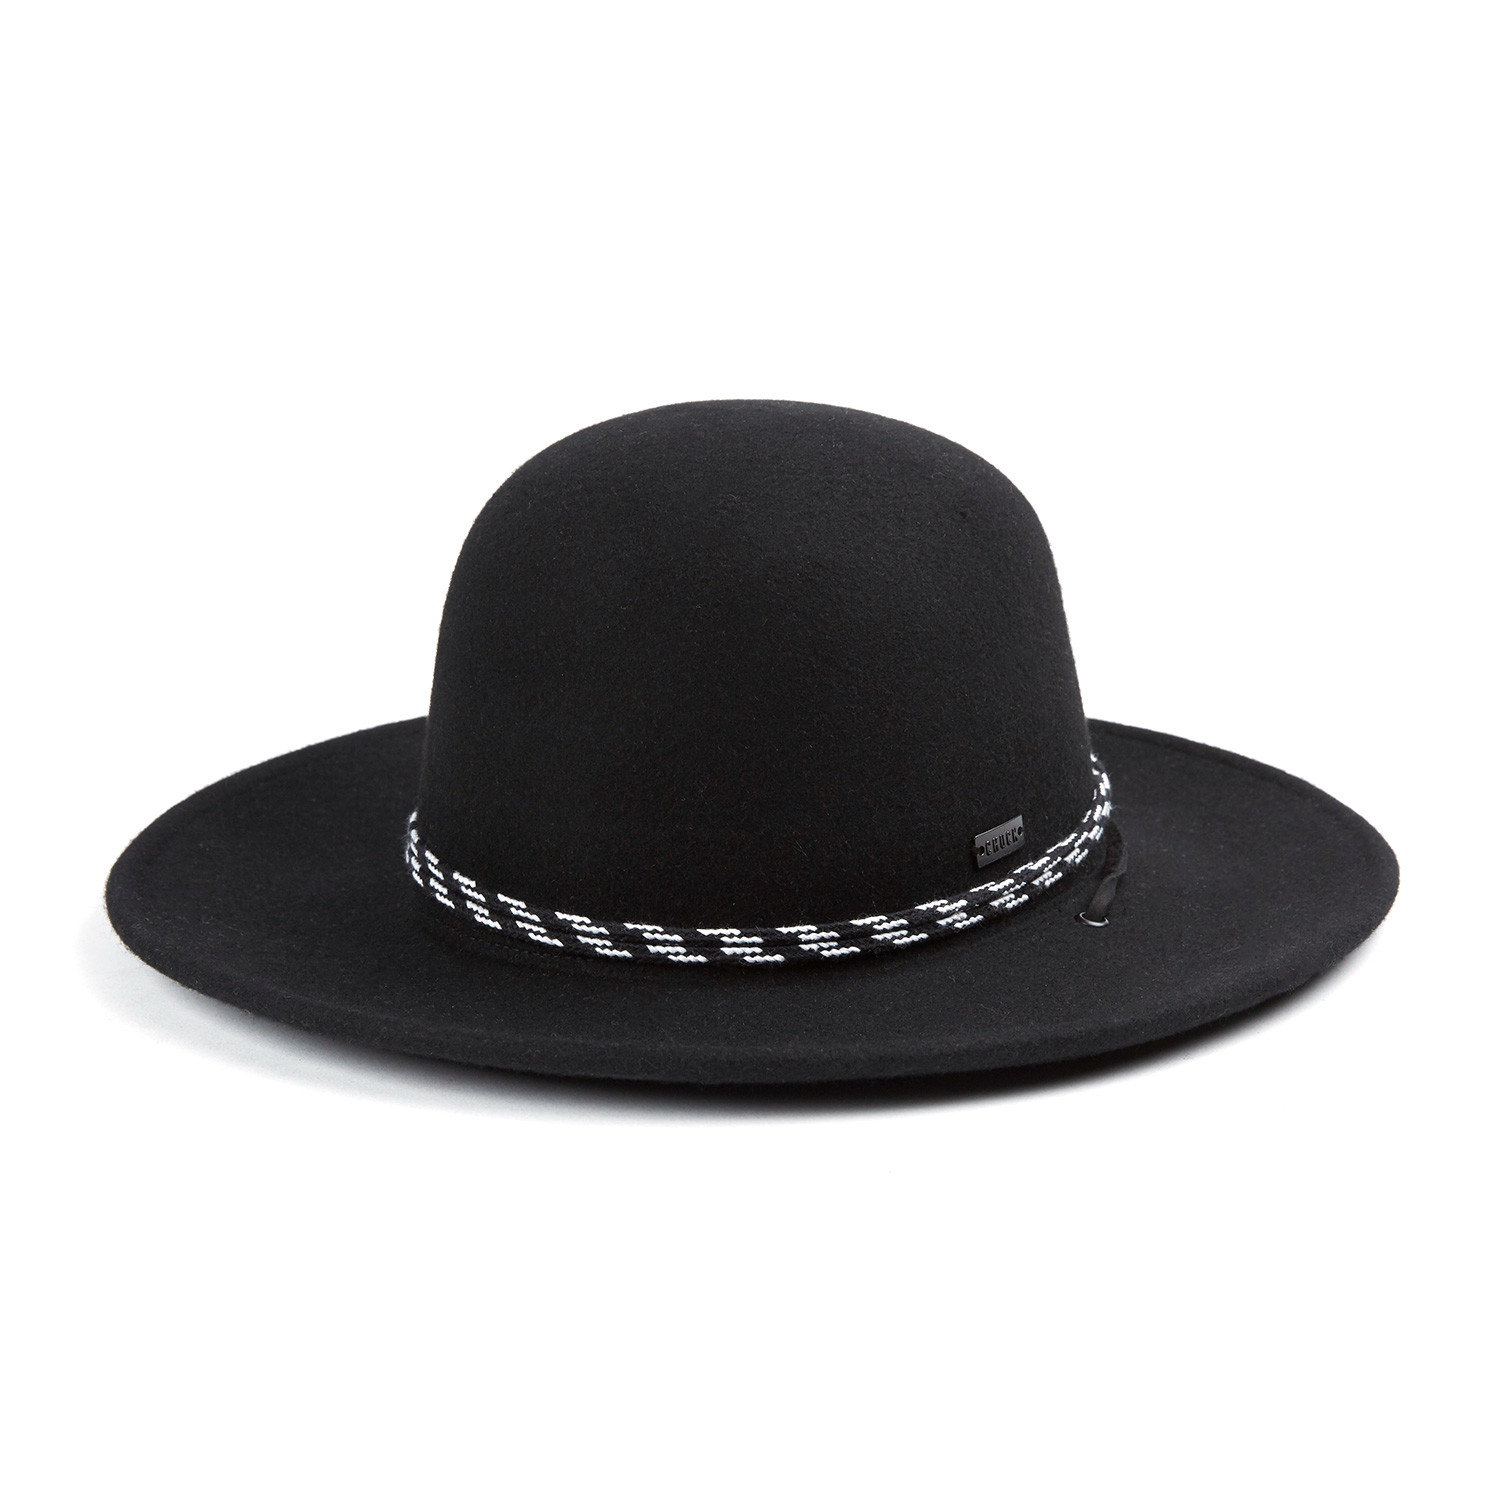 4b6b7a54c40 Rope Band Charlie Hat // Black (S) - Original Chuck - Touch of Modern